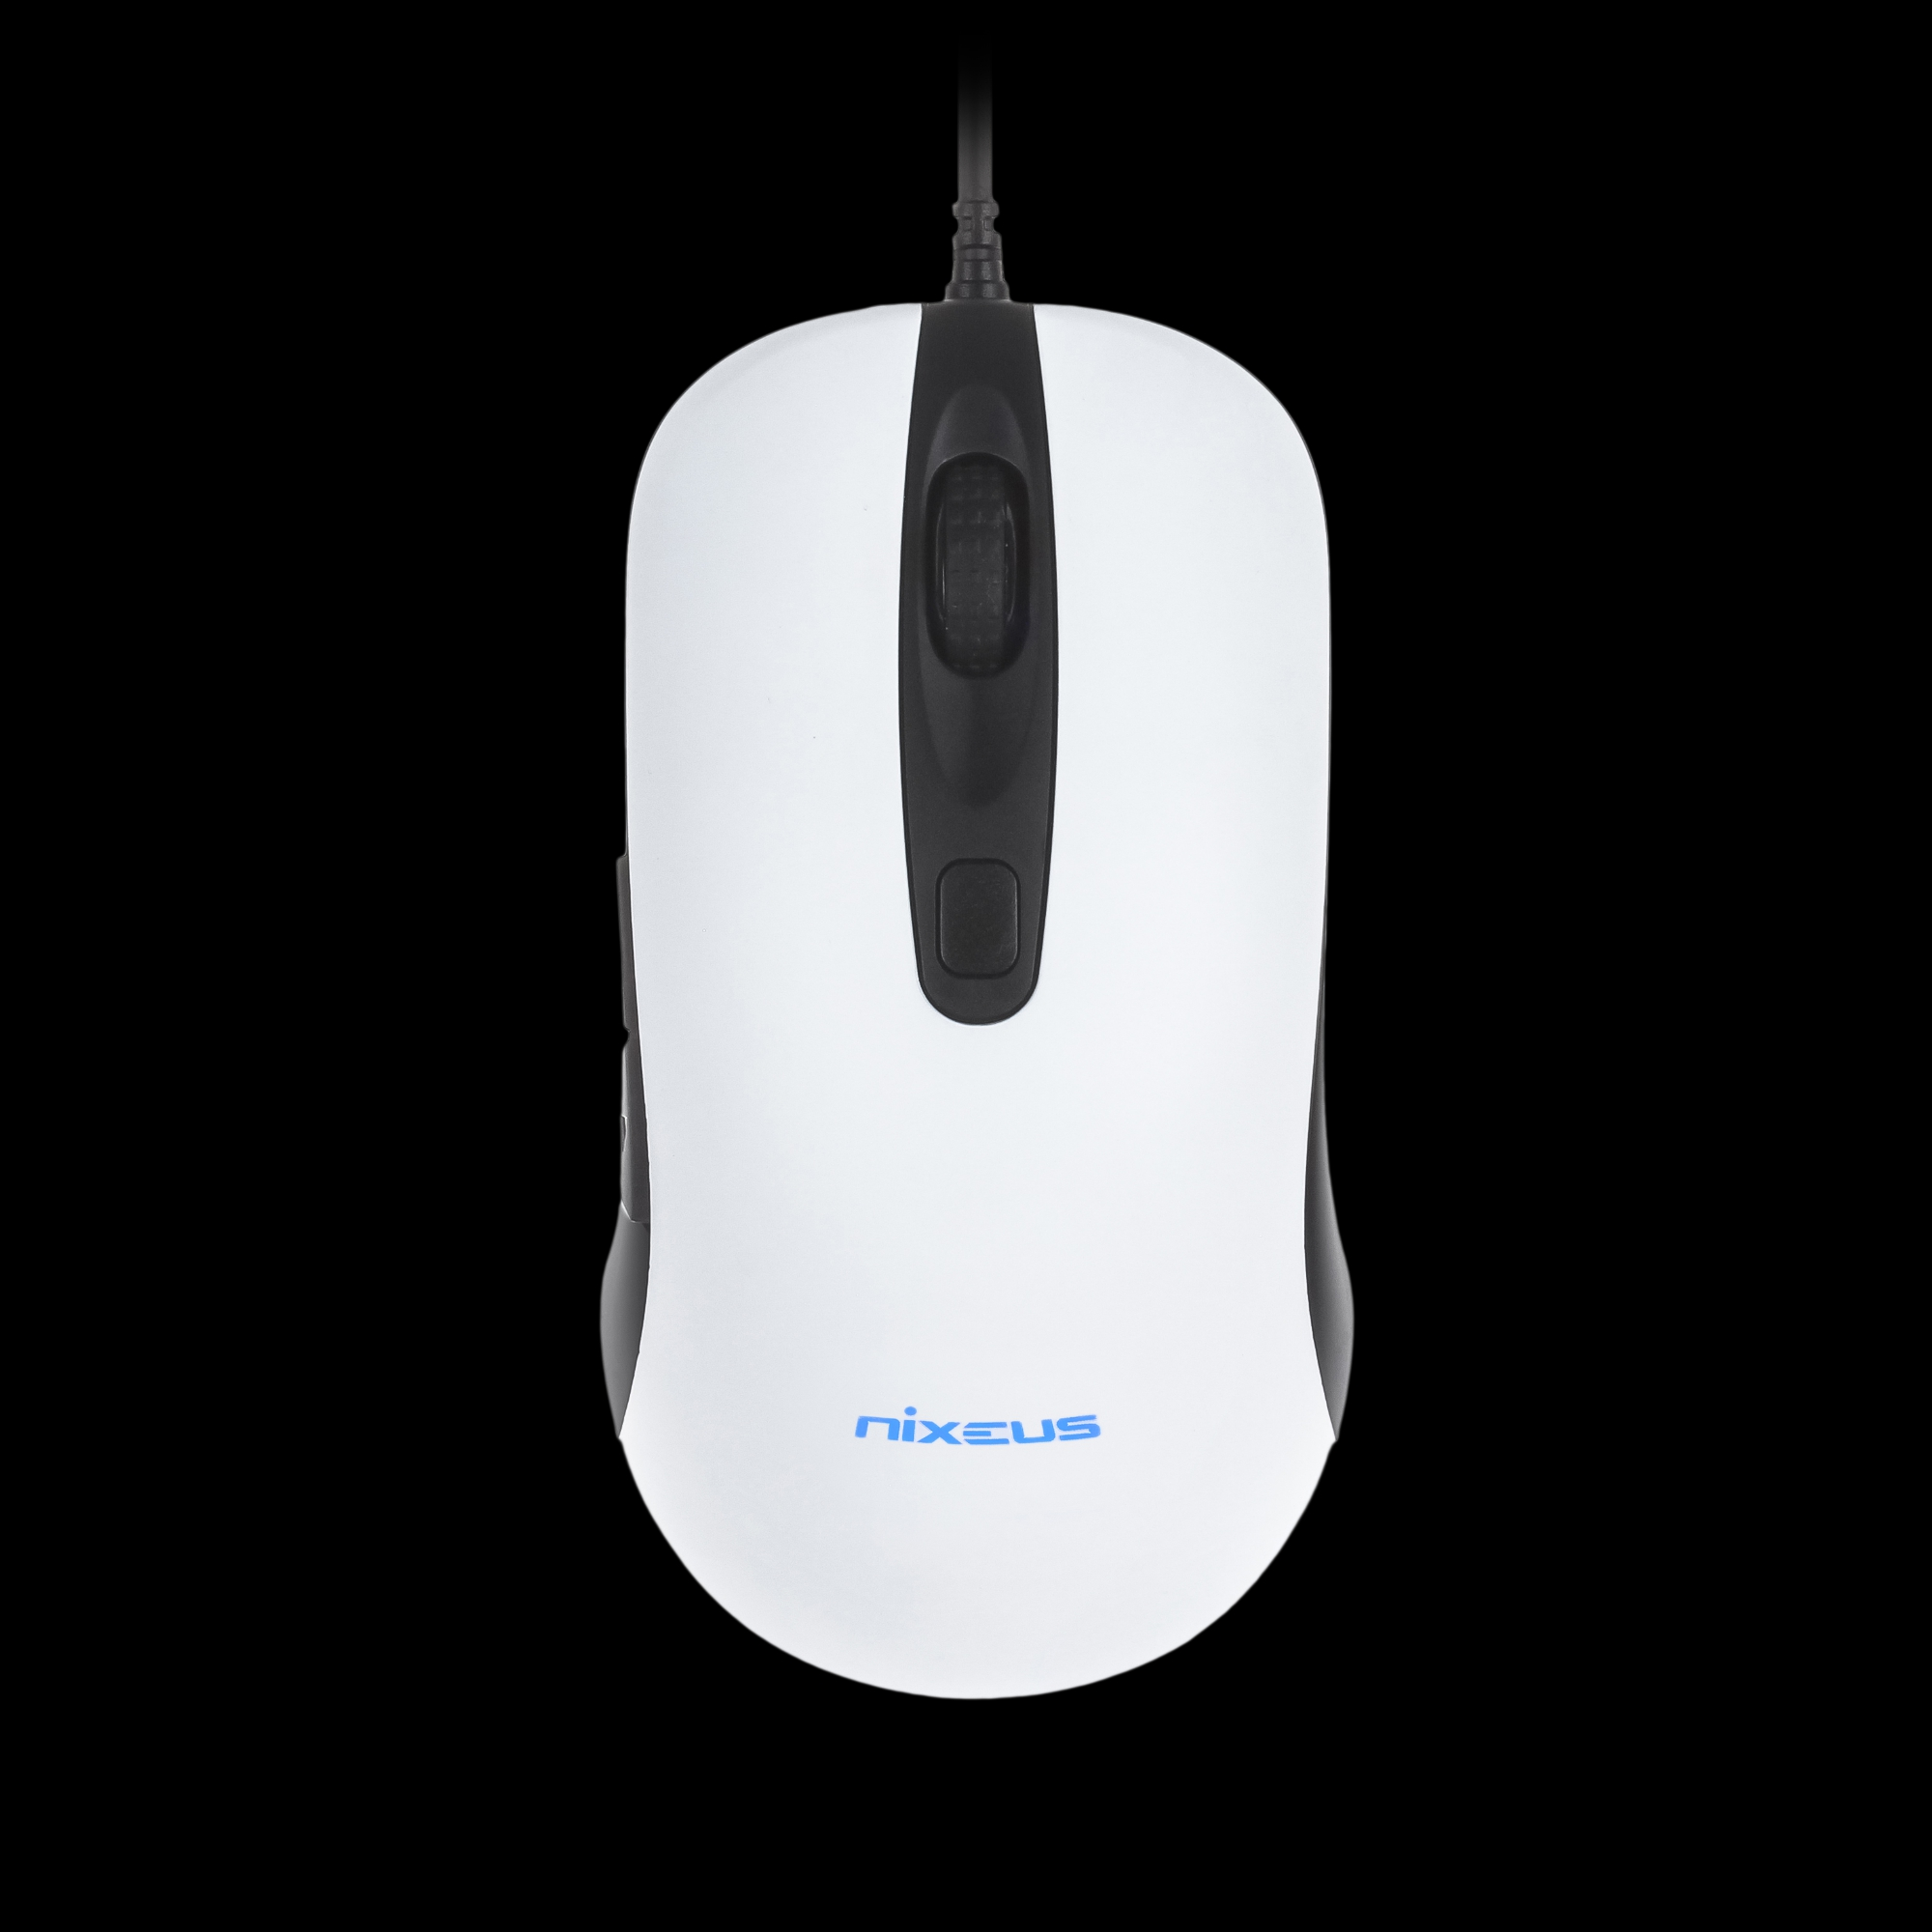 Nixeus REVEL Gaming Mouse with PMW3360 Gaming Grade Sensor (Available in Rubberized Black and Matte White)